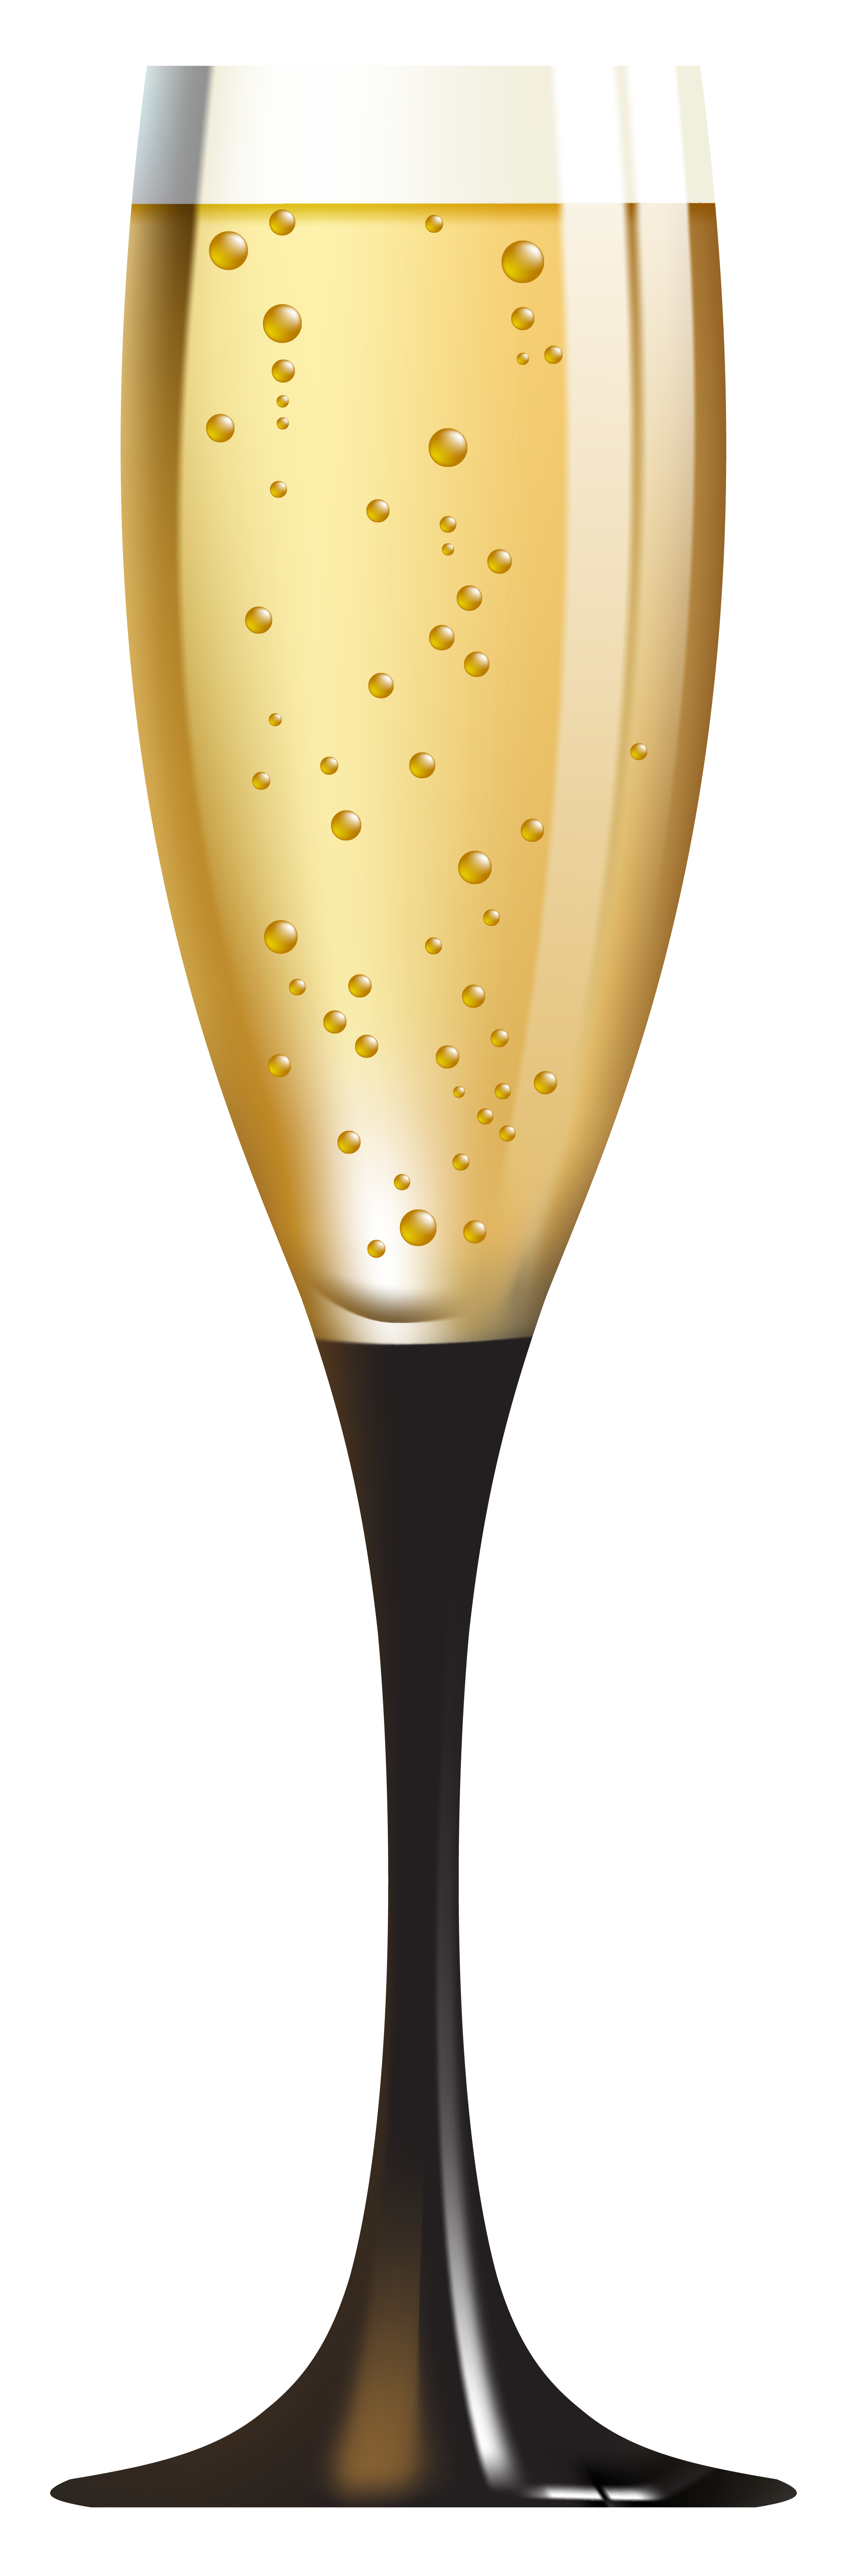 Champagne glass clip art free contempocorp | Pics/Words ...